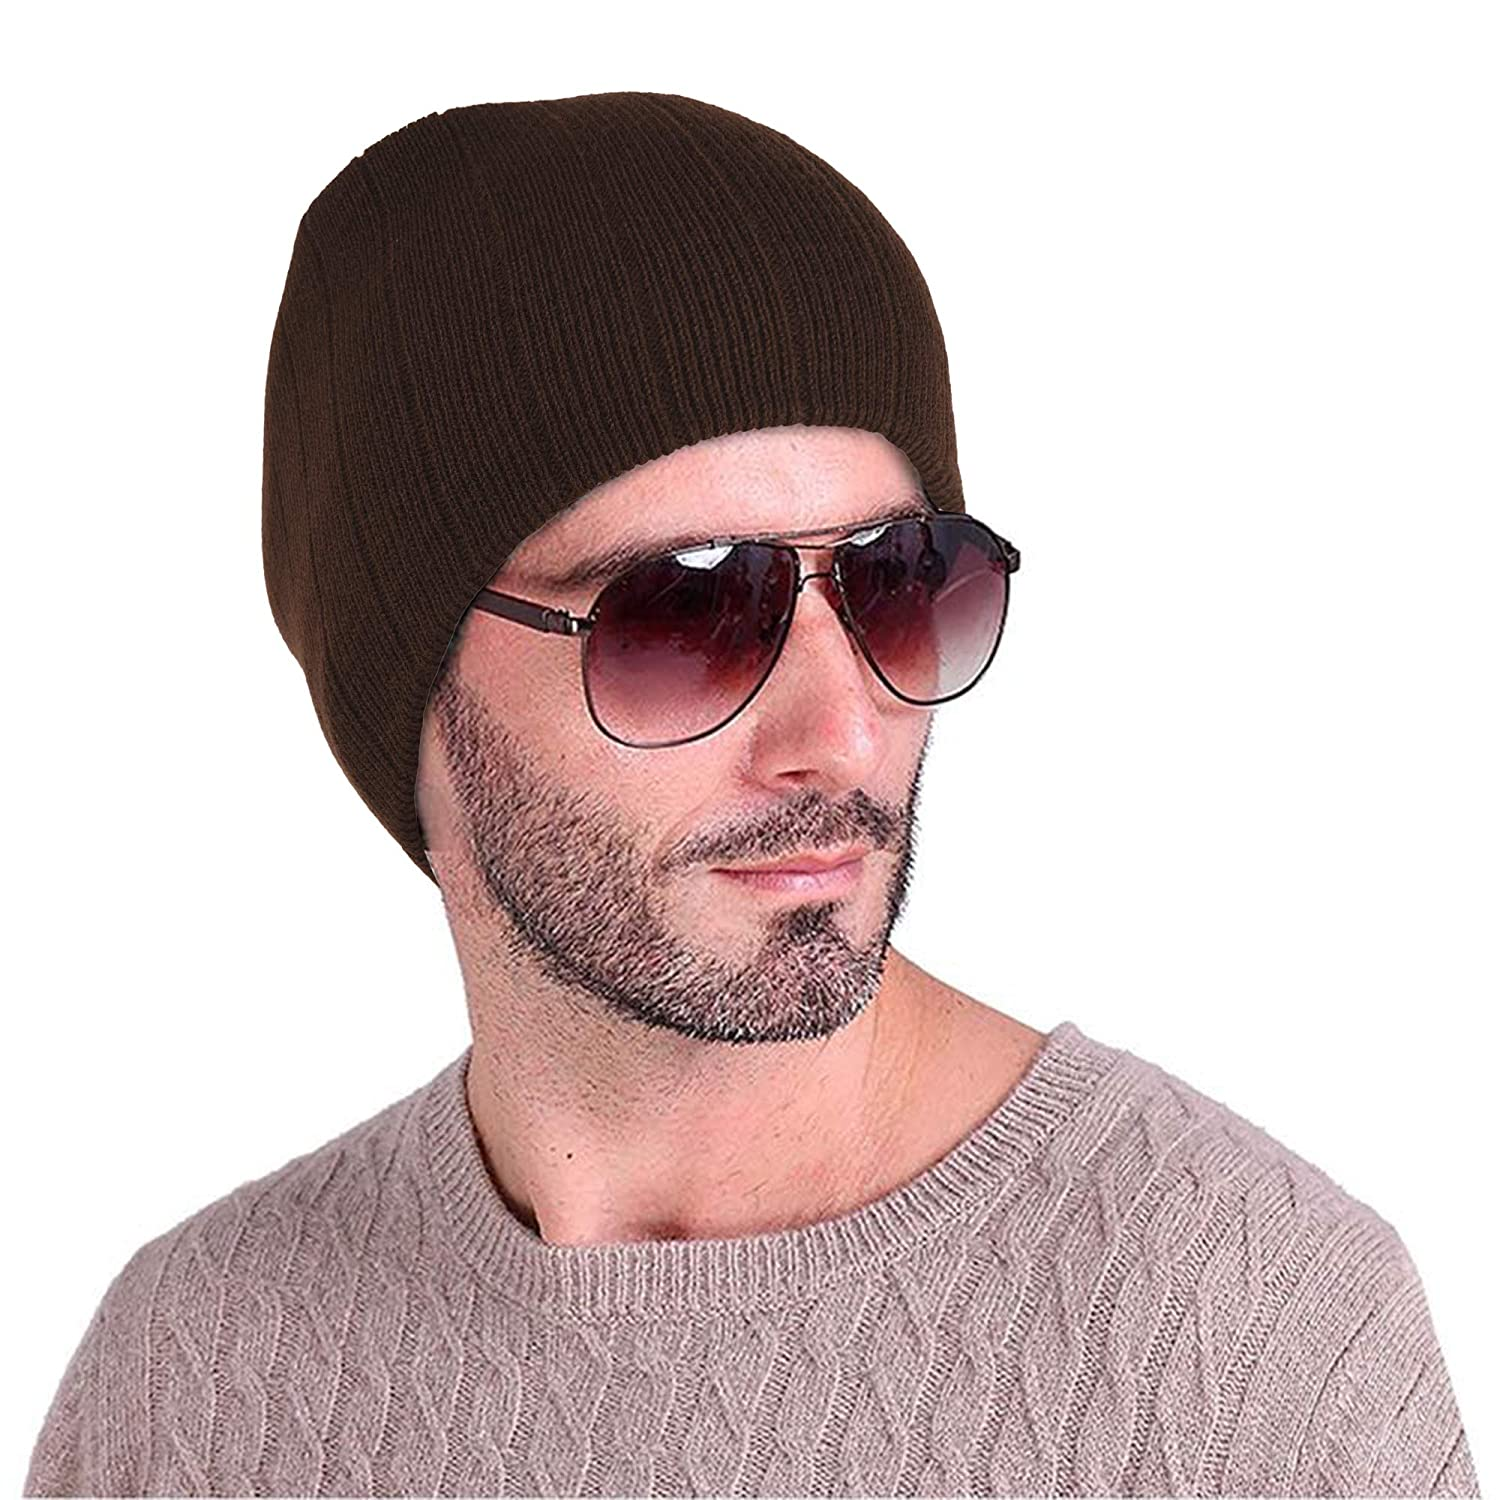 4a0d78fda4da25 DRUNKEN Men's and Women's Ribbed Knit Woollen Beanie Cap (Brown, Free  Size): Amazon.in: Clothing & Accessories